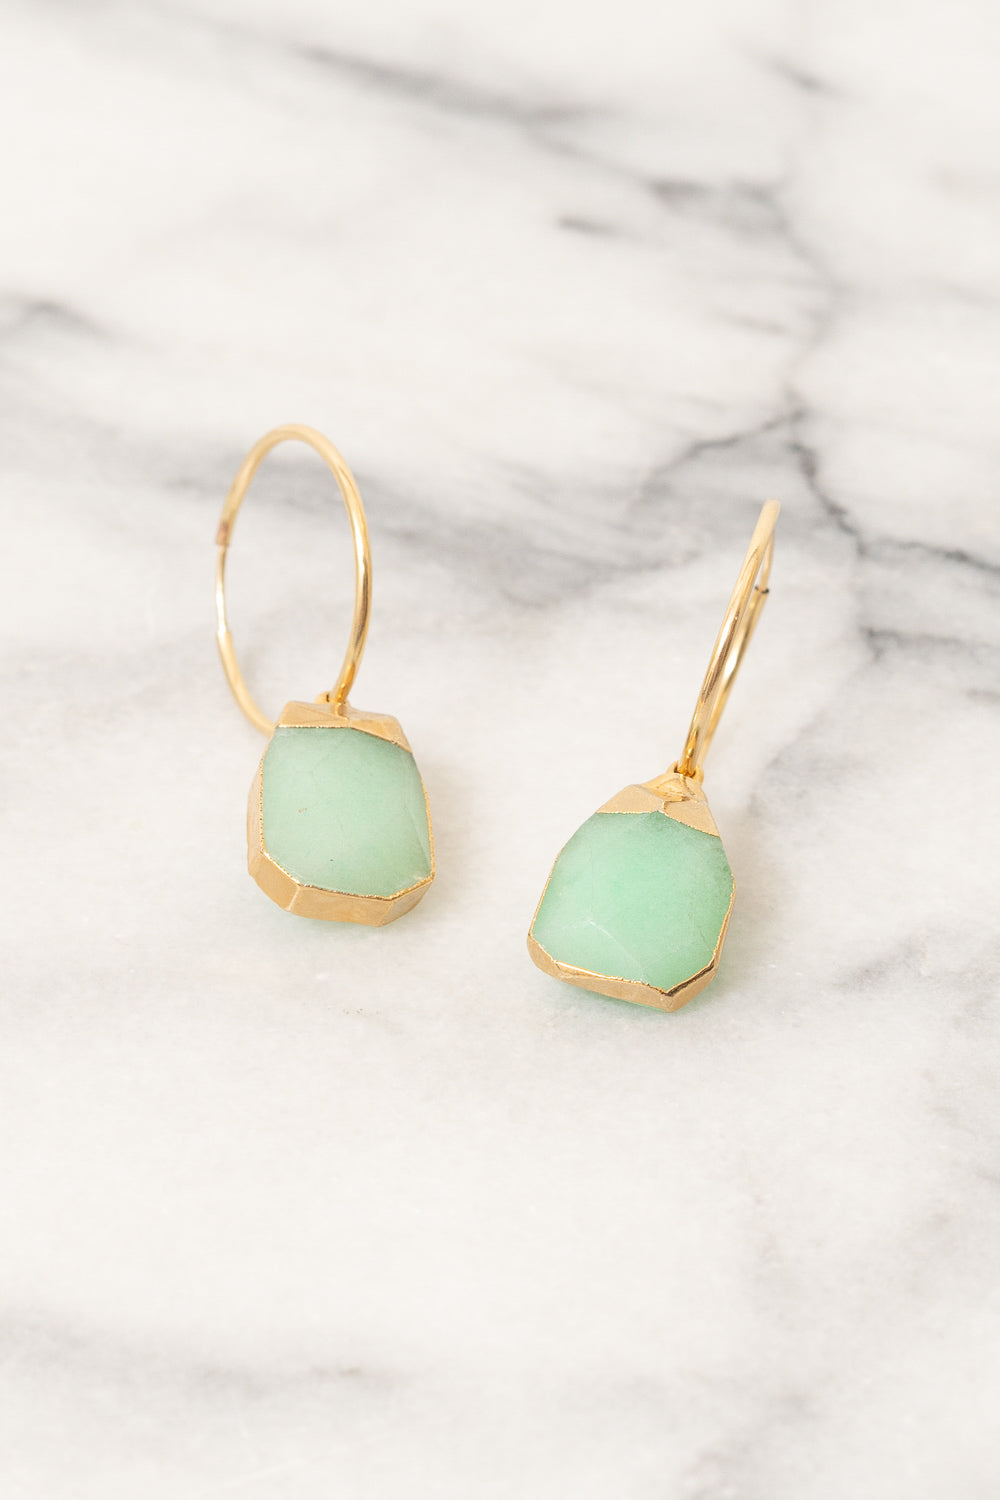 gold hoop earrings with mint jade drop accents on marble